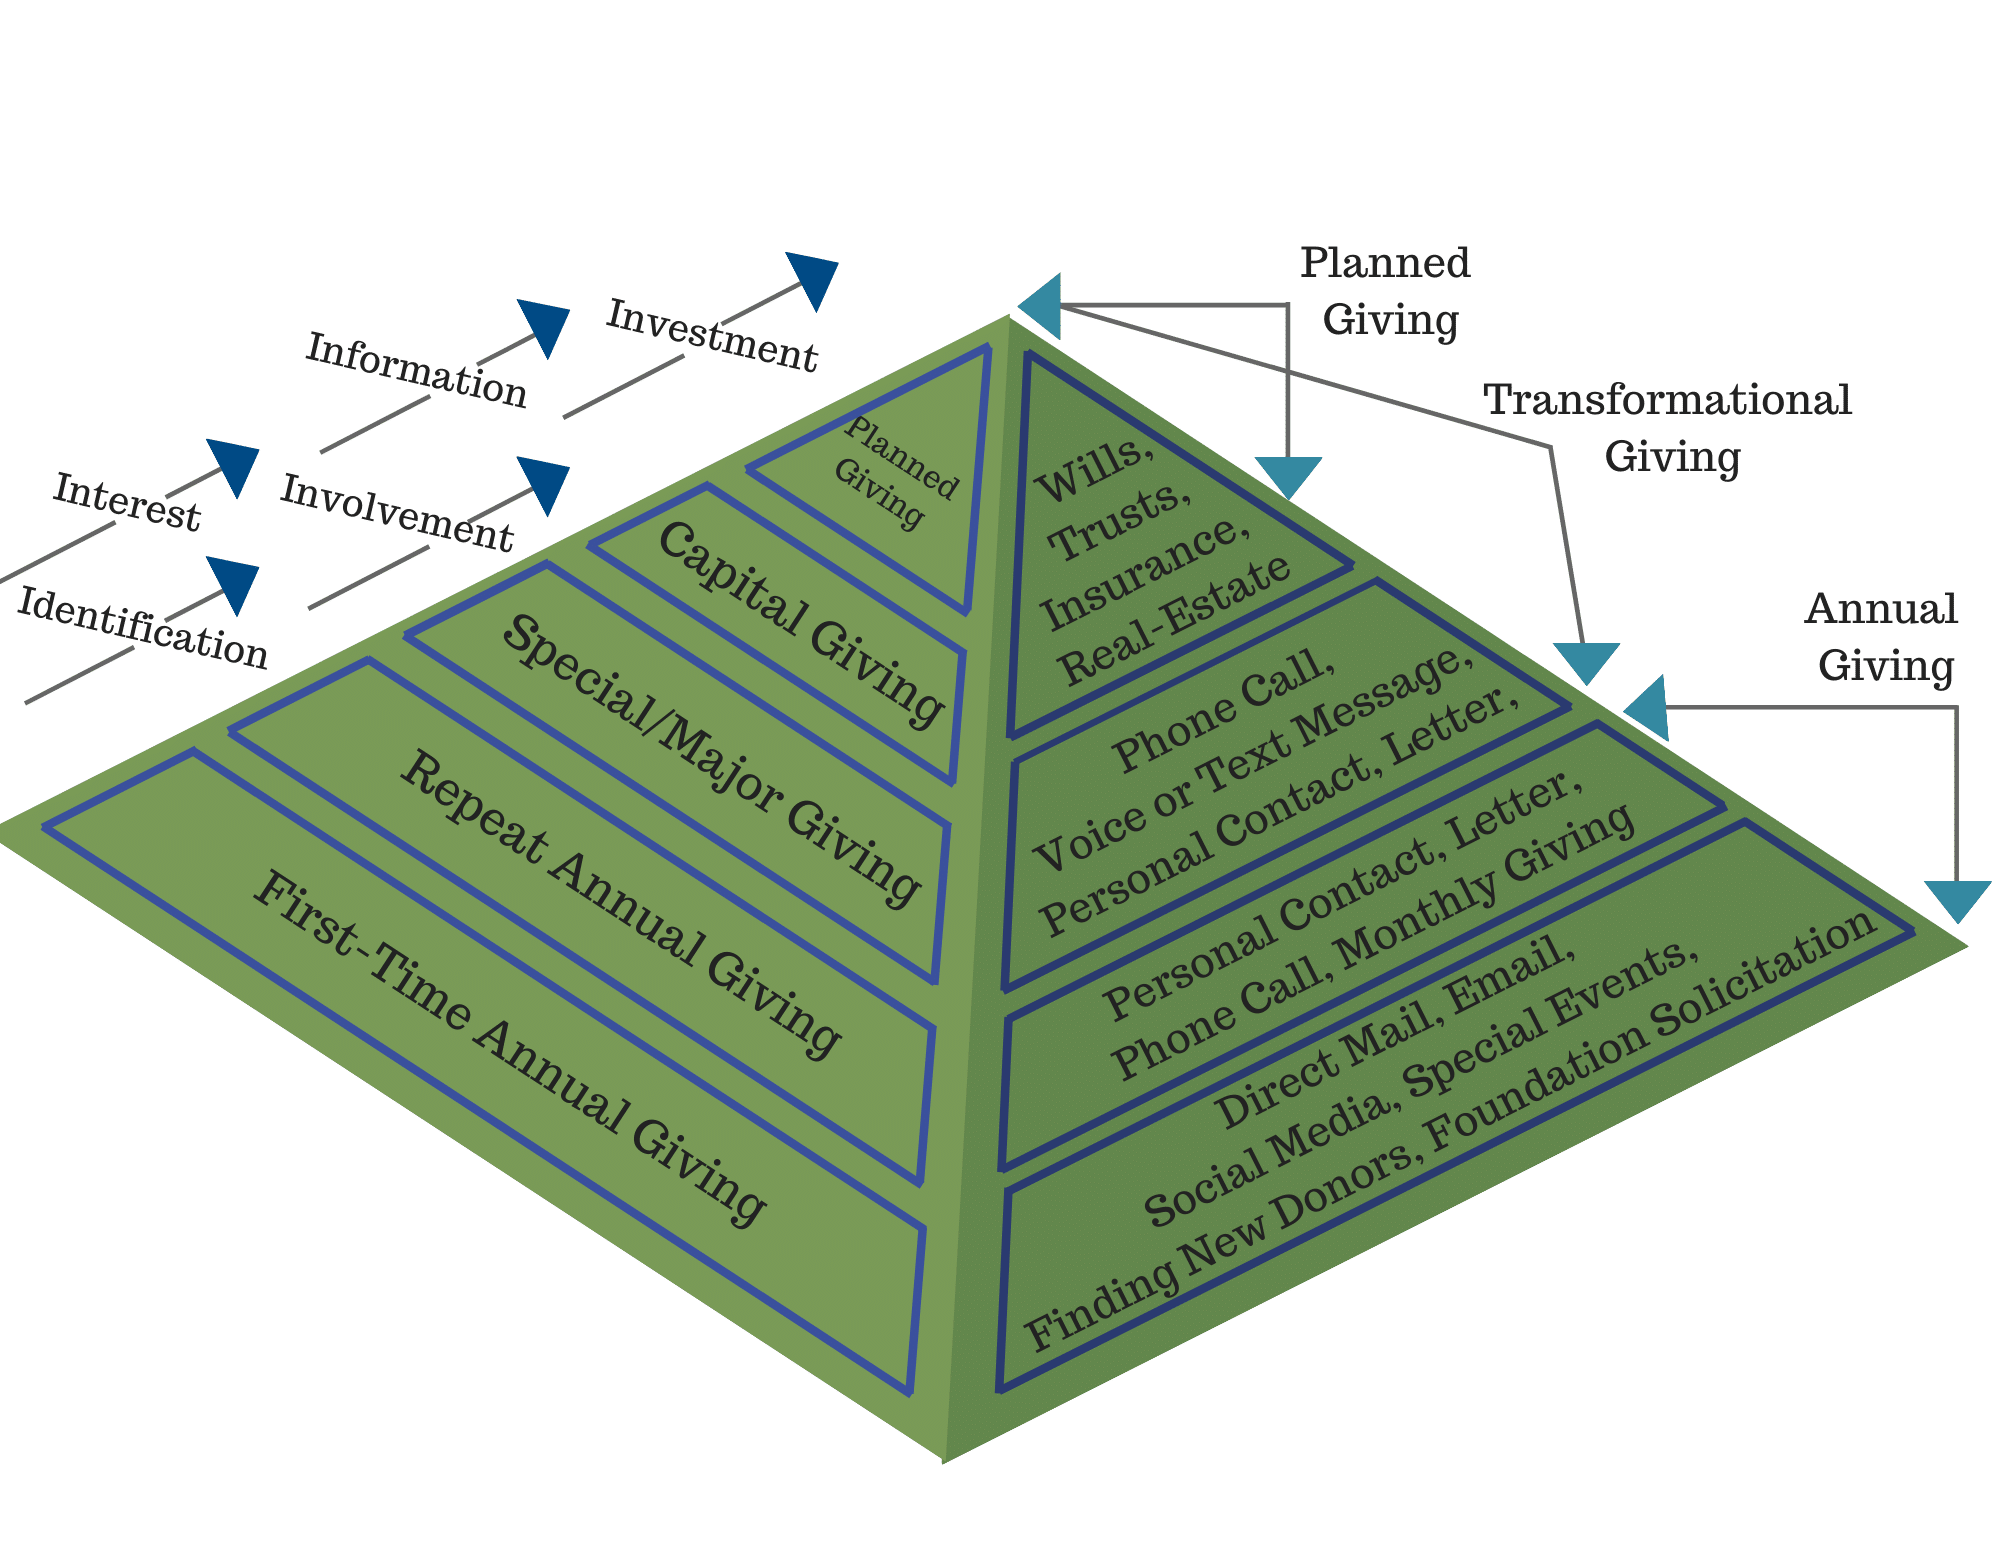 The Pyramid of Giving